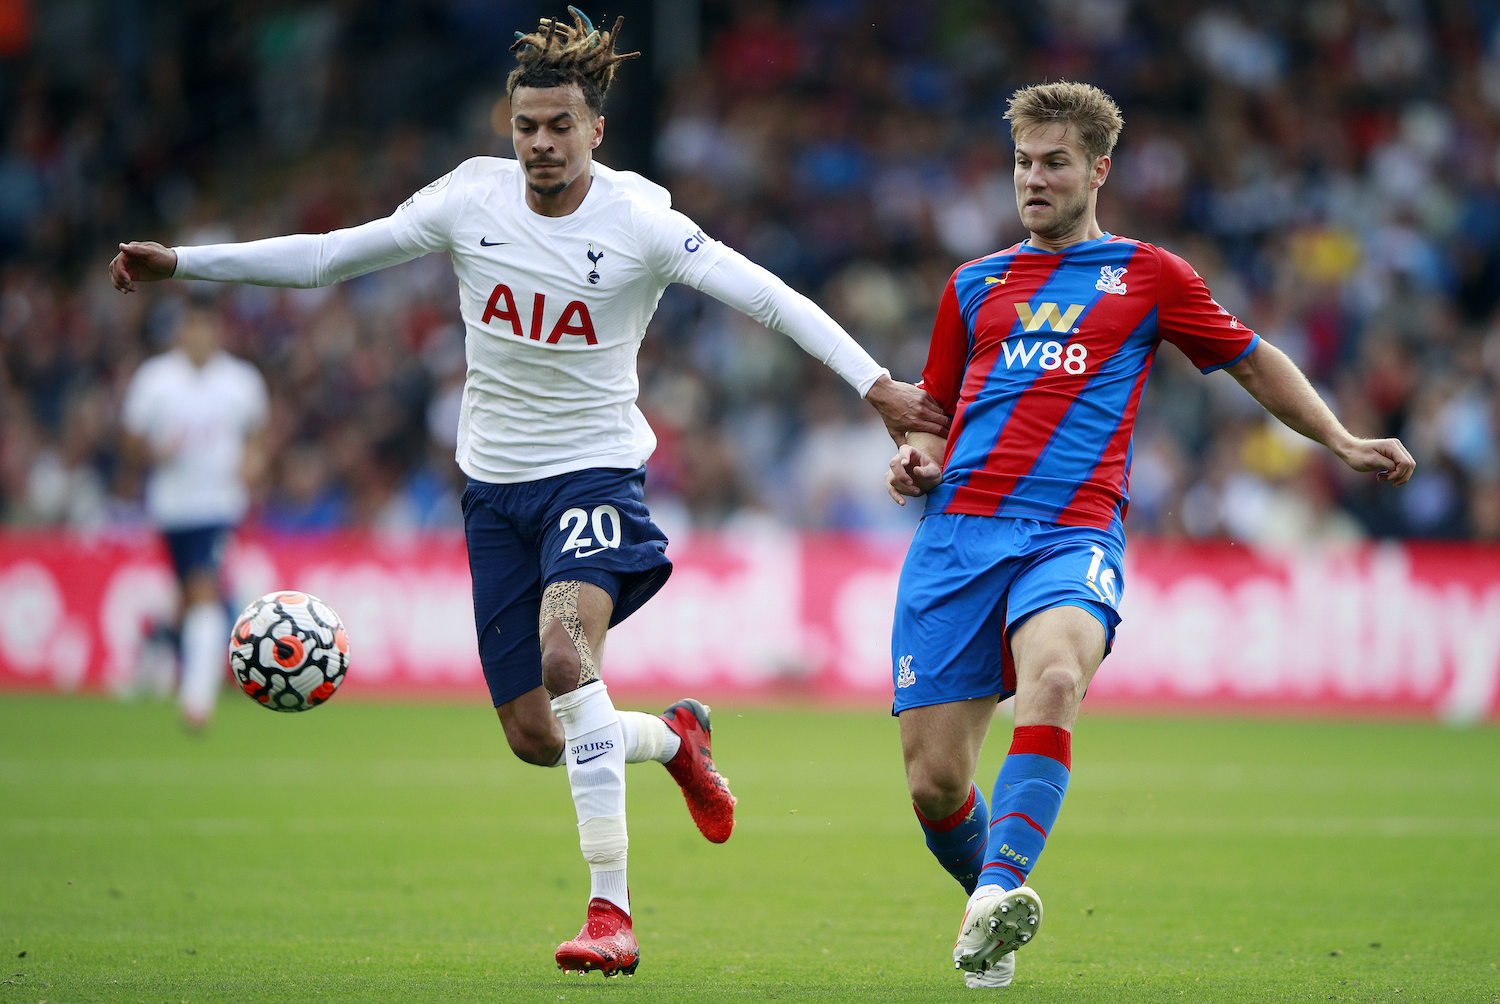 Eye on the ball: Dele Alli of Tottenham Hotspur is pursued by Joachim Andersen of Crystal Palace during their Premier league match at Selhurst Park in London on Saturday. (Reuters Photo)